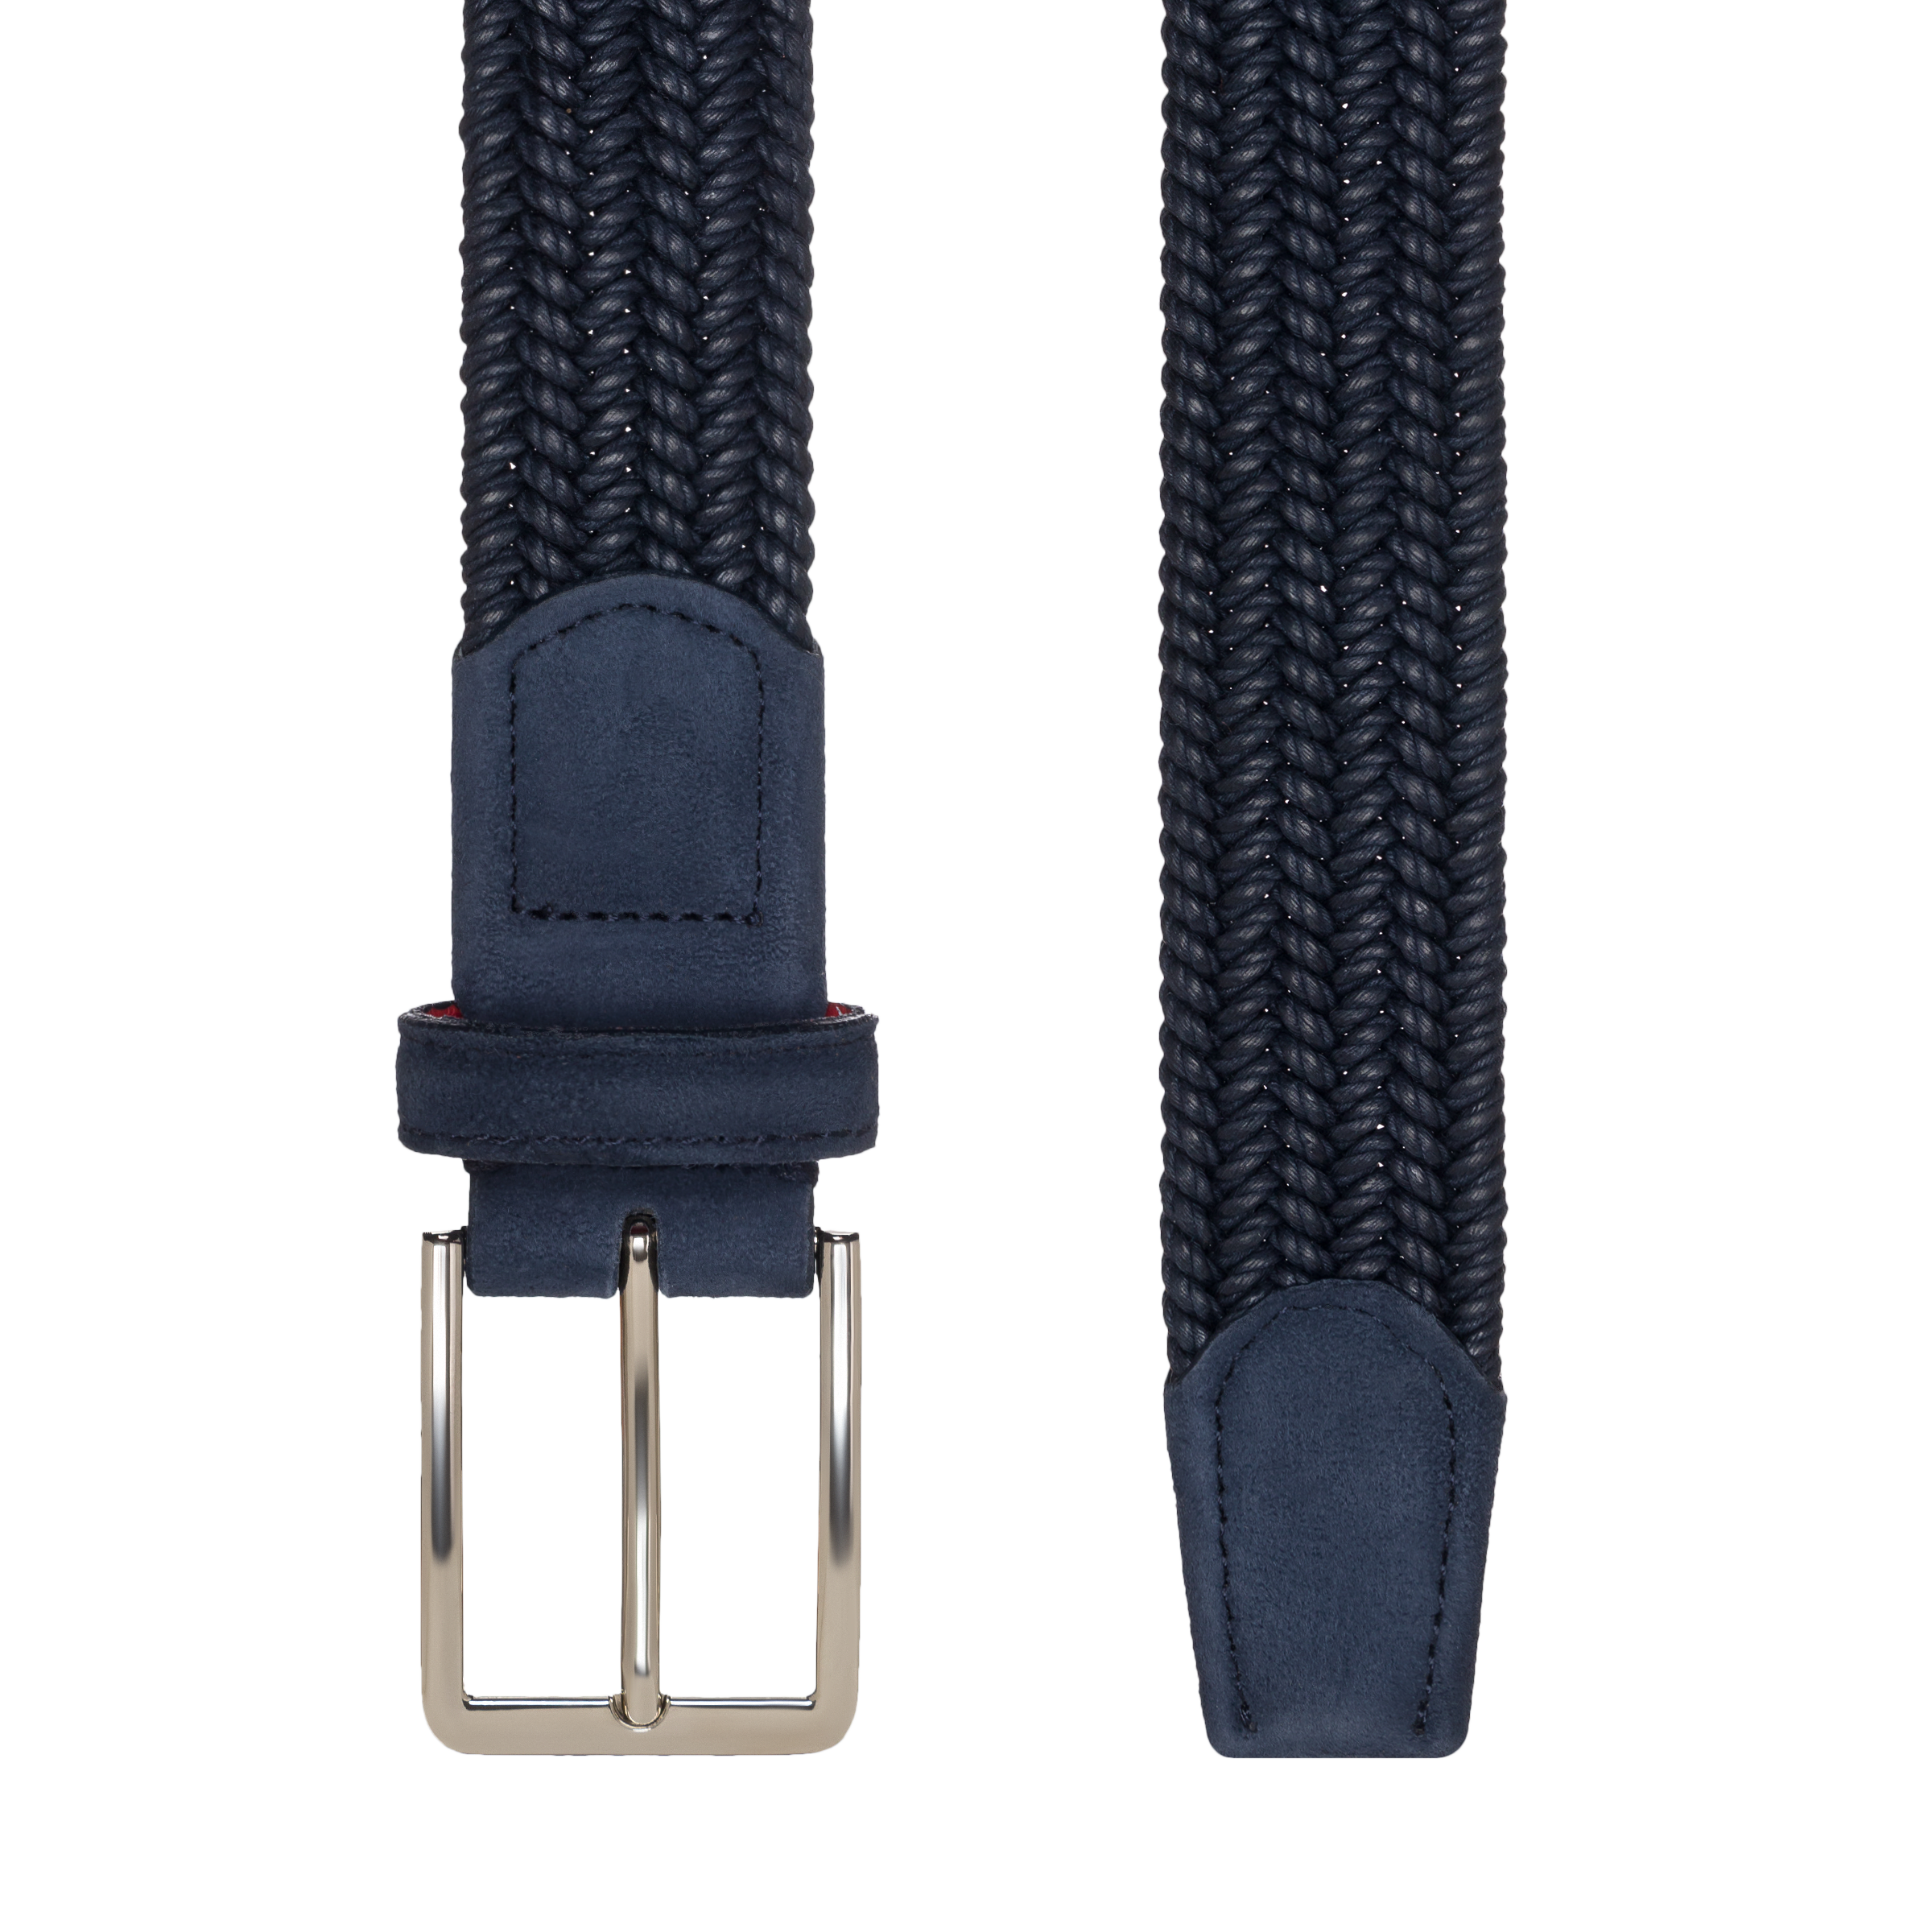 Belts product image